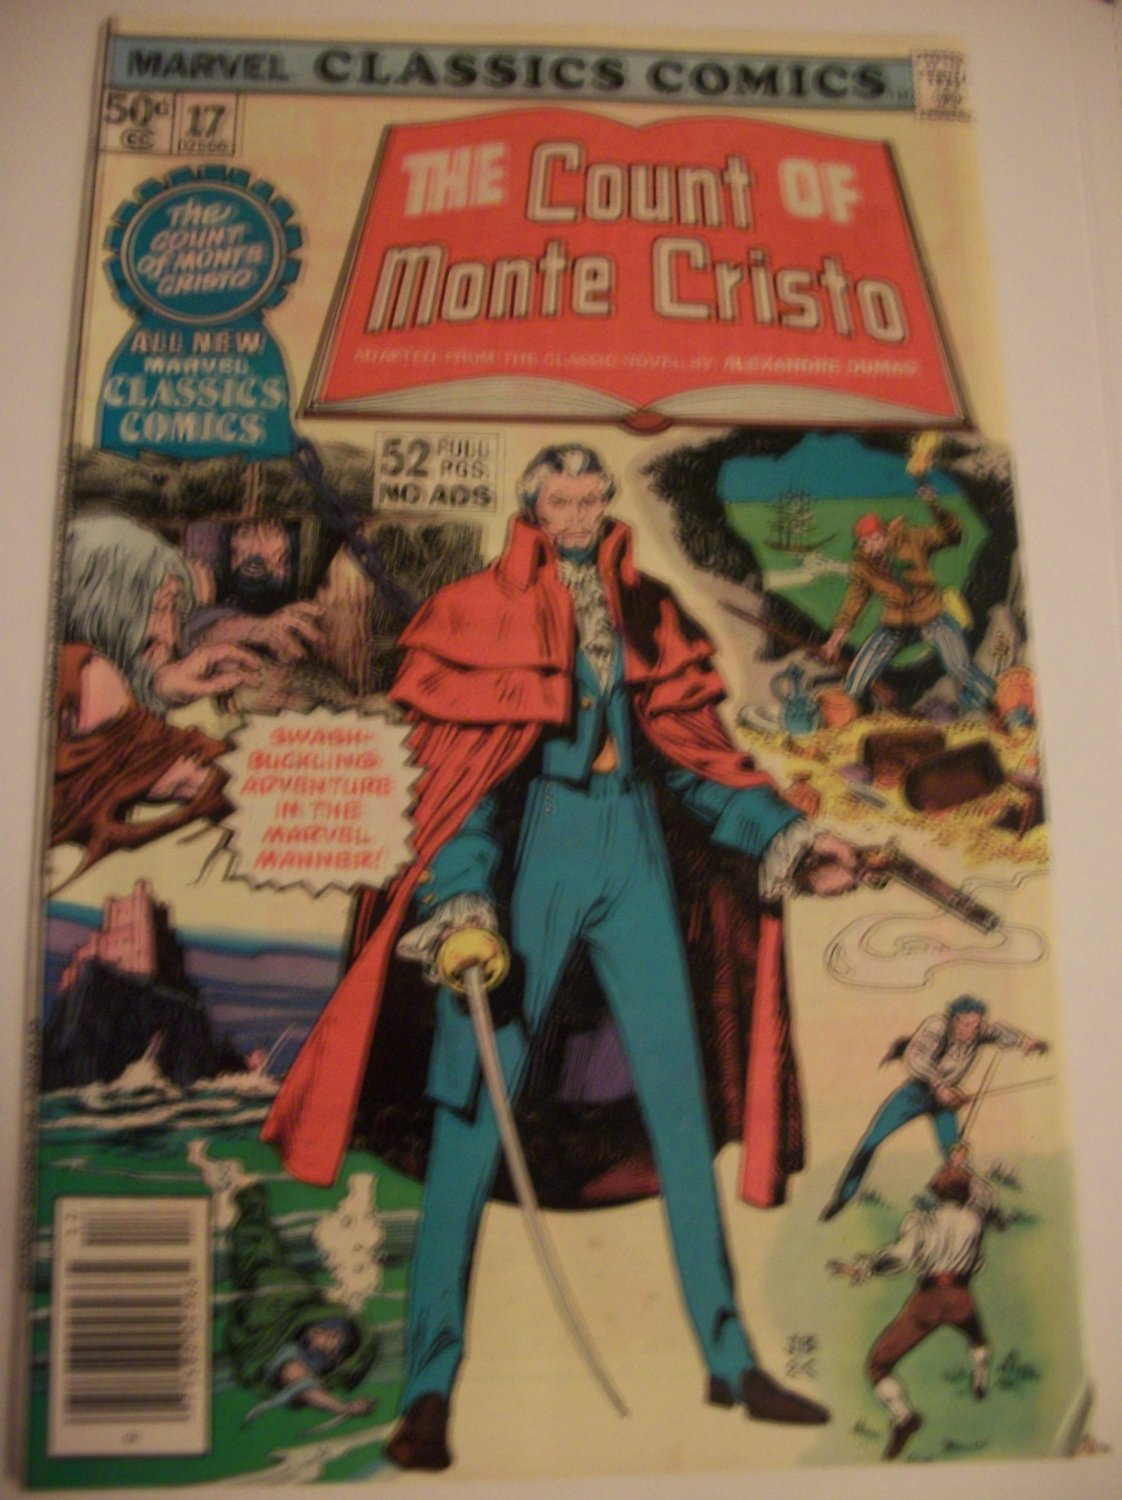 Marvel Classics Comics #17 The Count of Monte Cristo/Claremont 52 pages no Ads